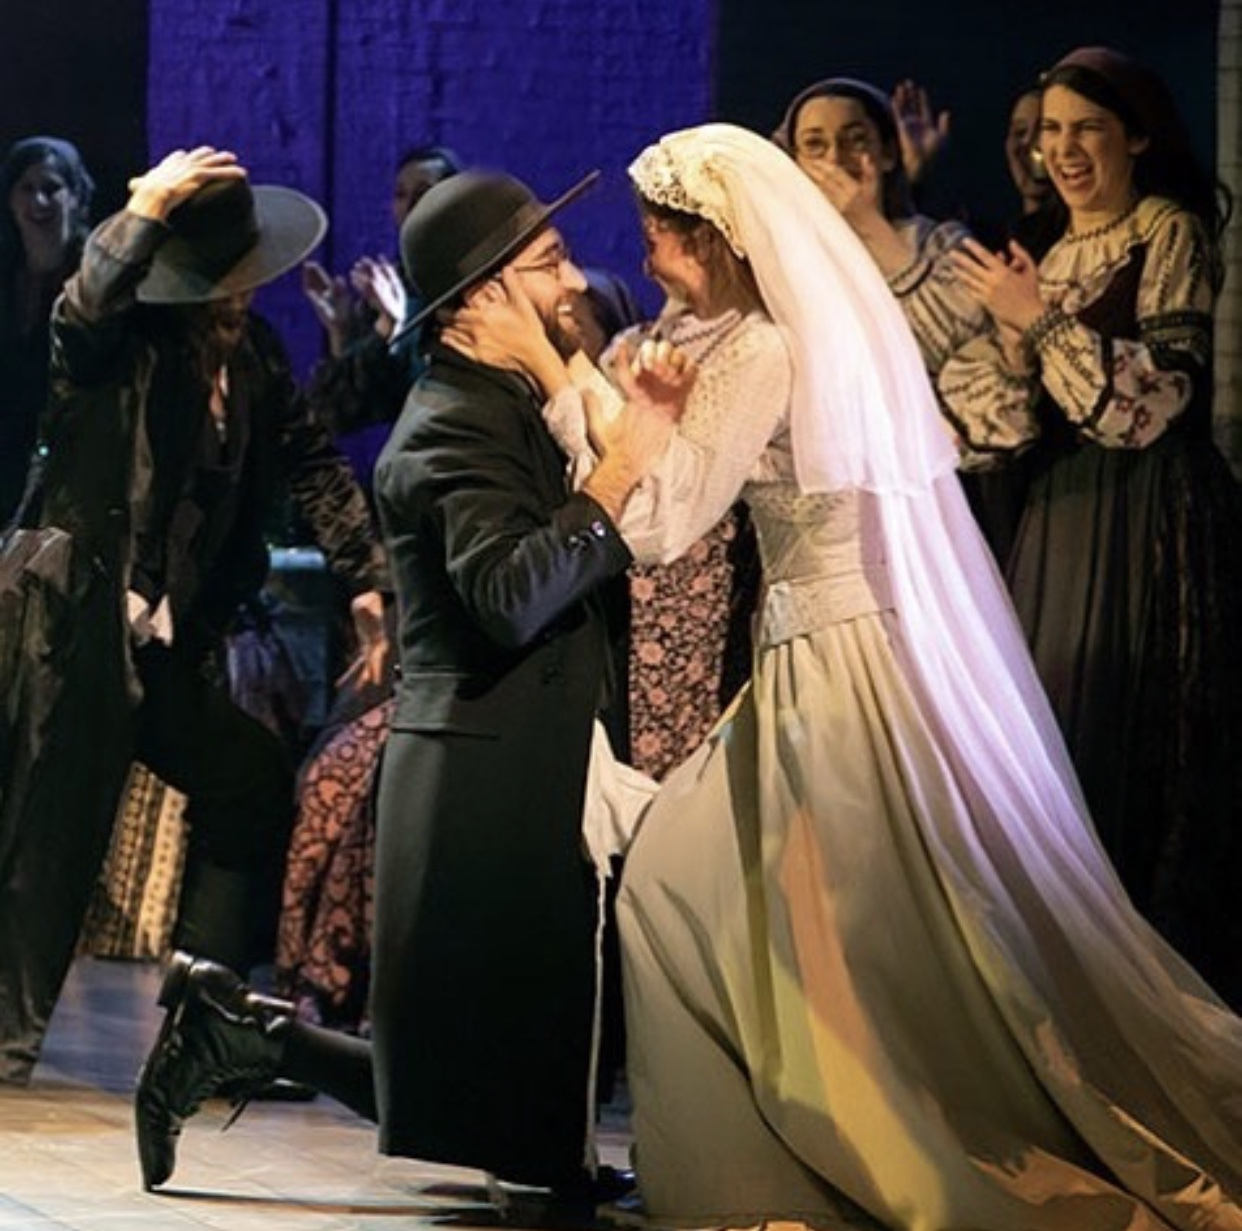 FIDDLER ON THE ROOF Arrives at Tulsa Performing Arts Center Next Month